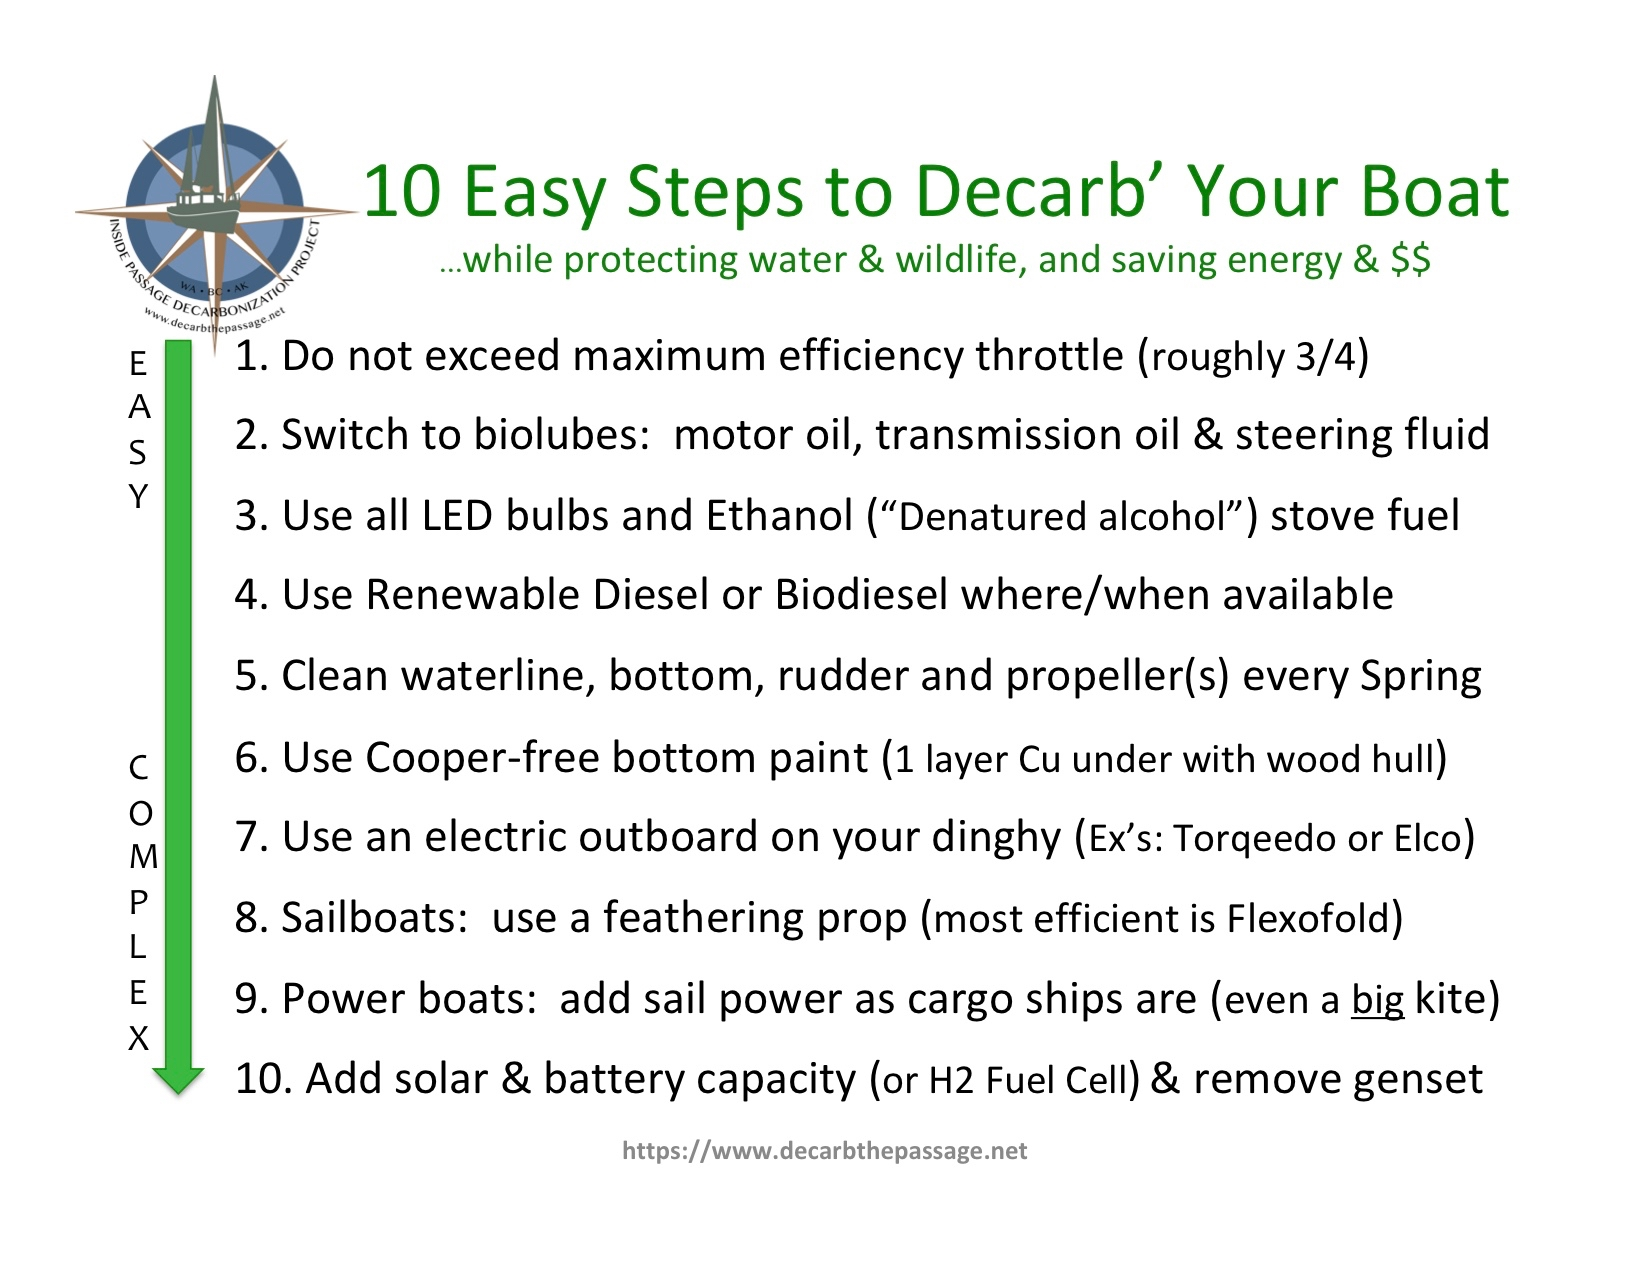 10 Easy Steps to Decarb.jpg